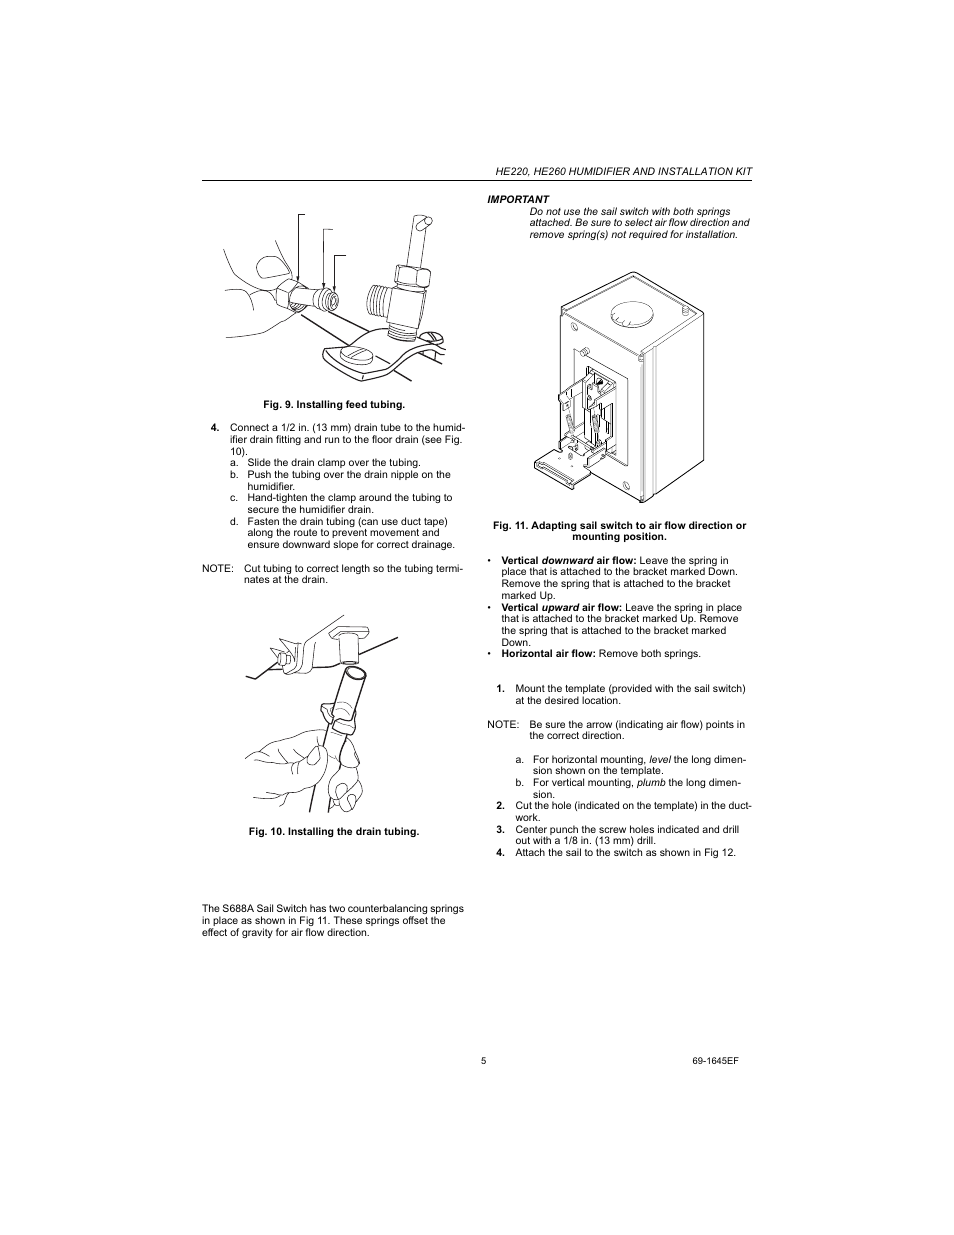 installing the sail switch, adapting switch to air flow direction | honeywell  he220 manuel d'utilisation | page 5 / 24